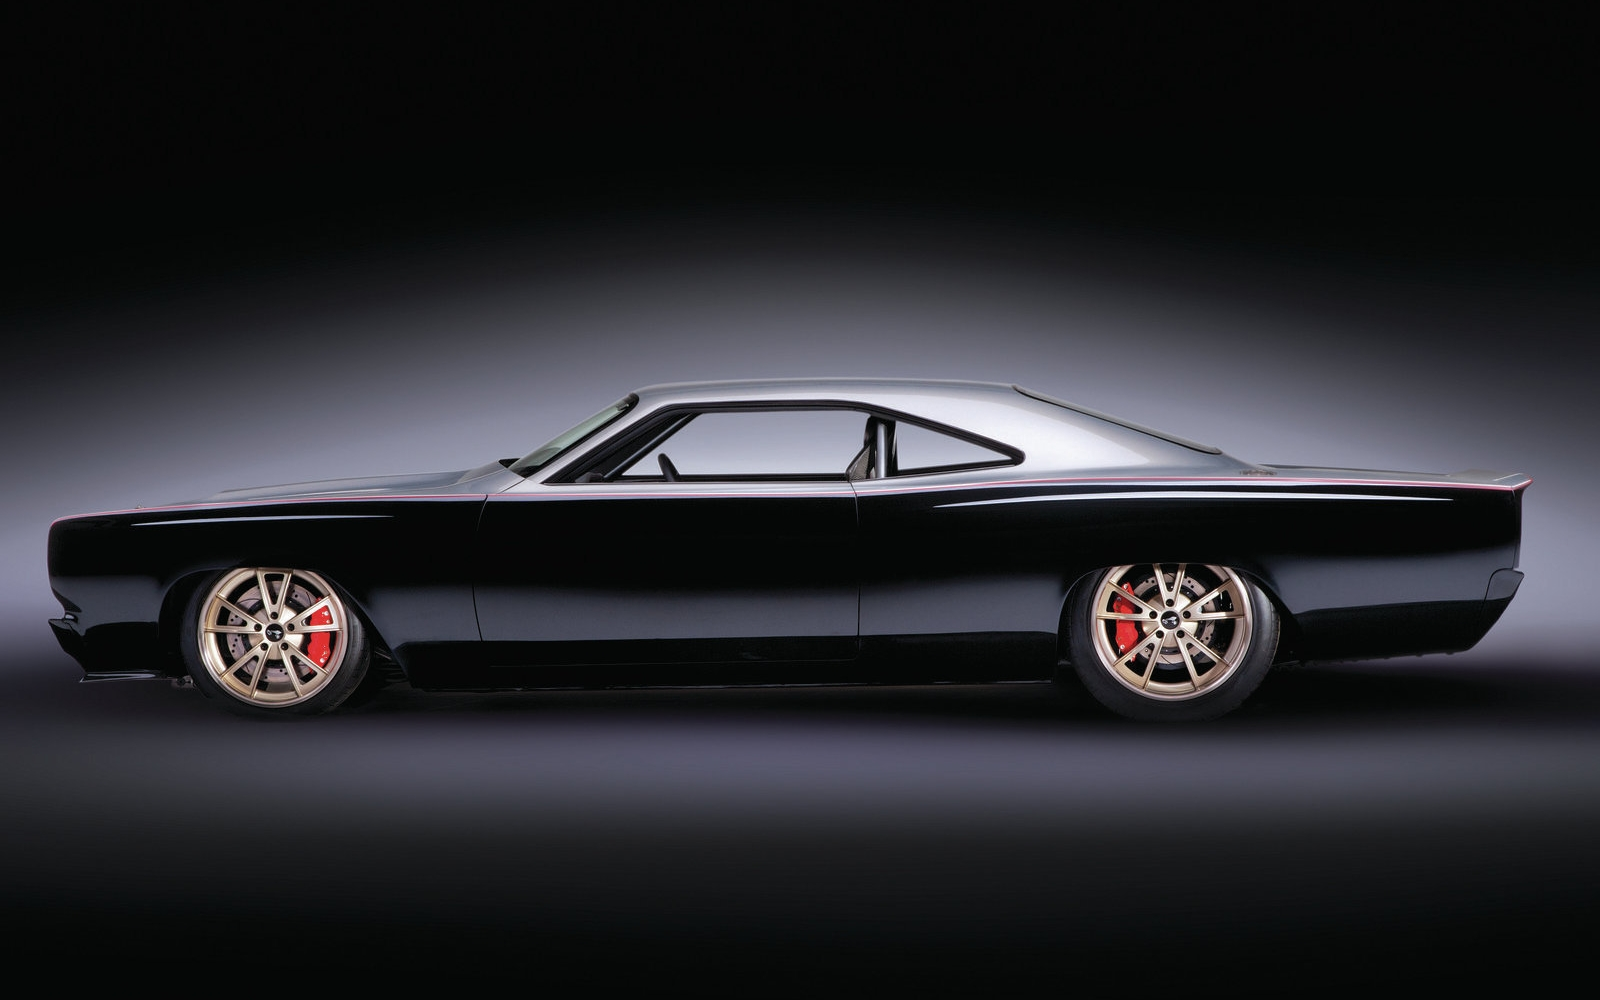 Cool Cars Wallpaper For Mobile 171 Plymouth Hd Wallpapers Backgrounds Wallpaper Abyss